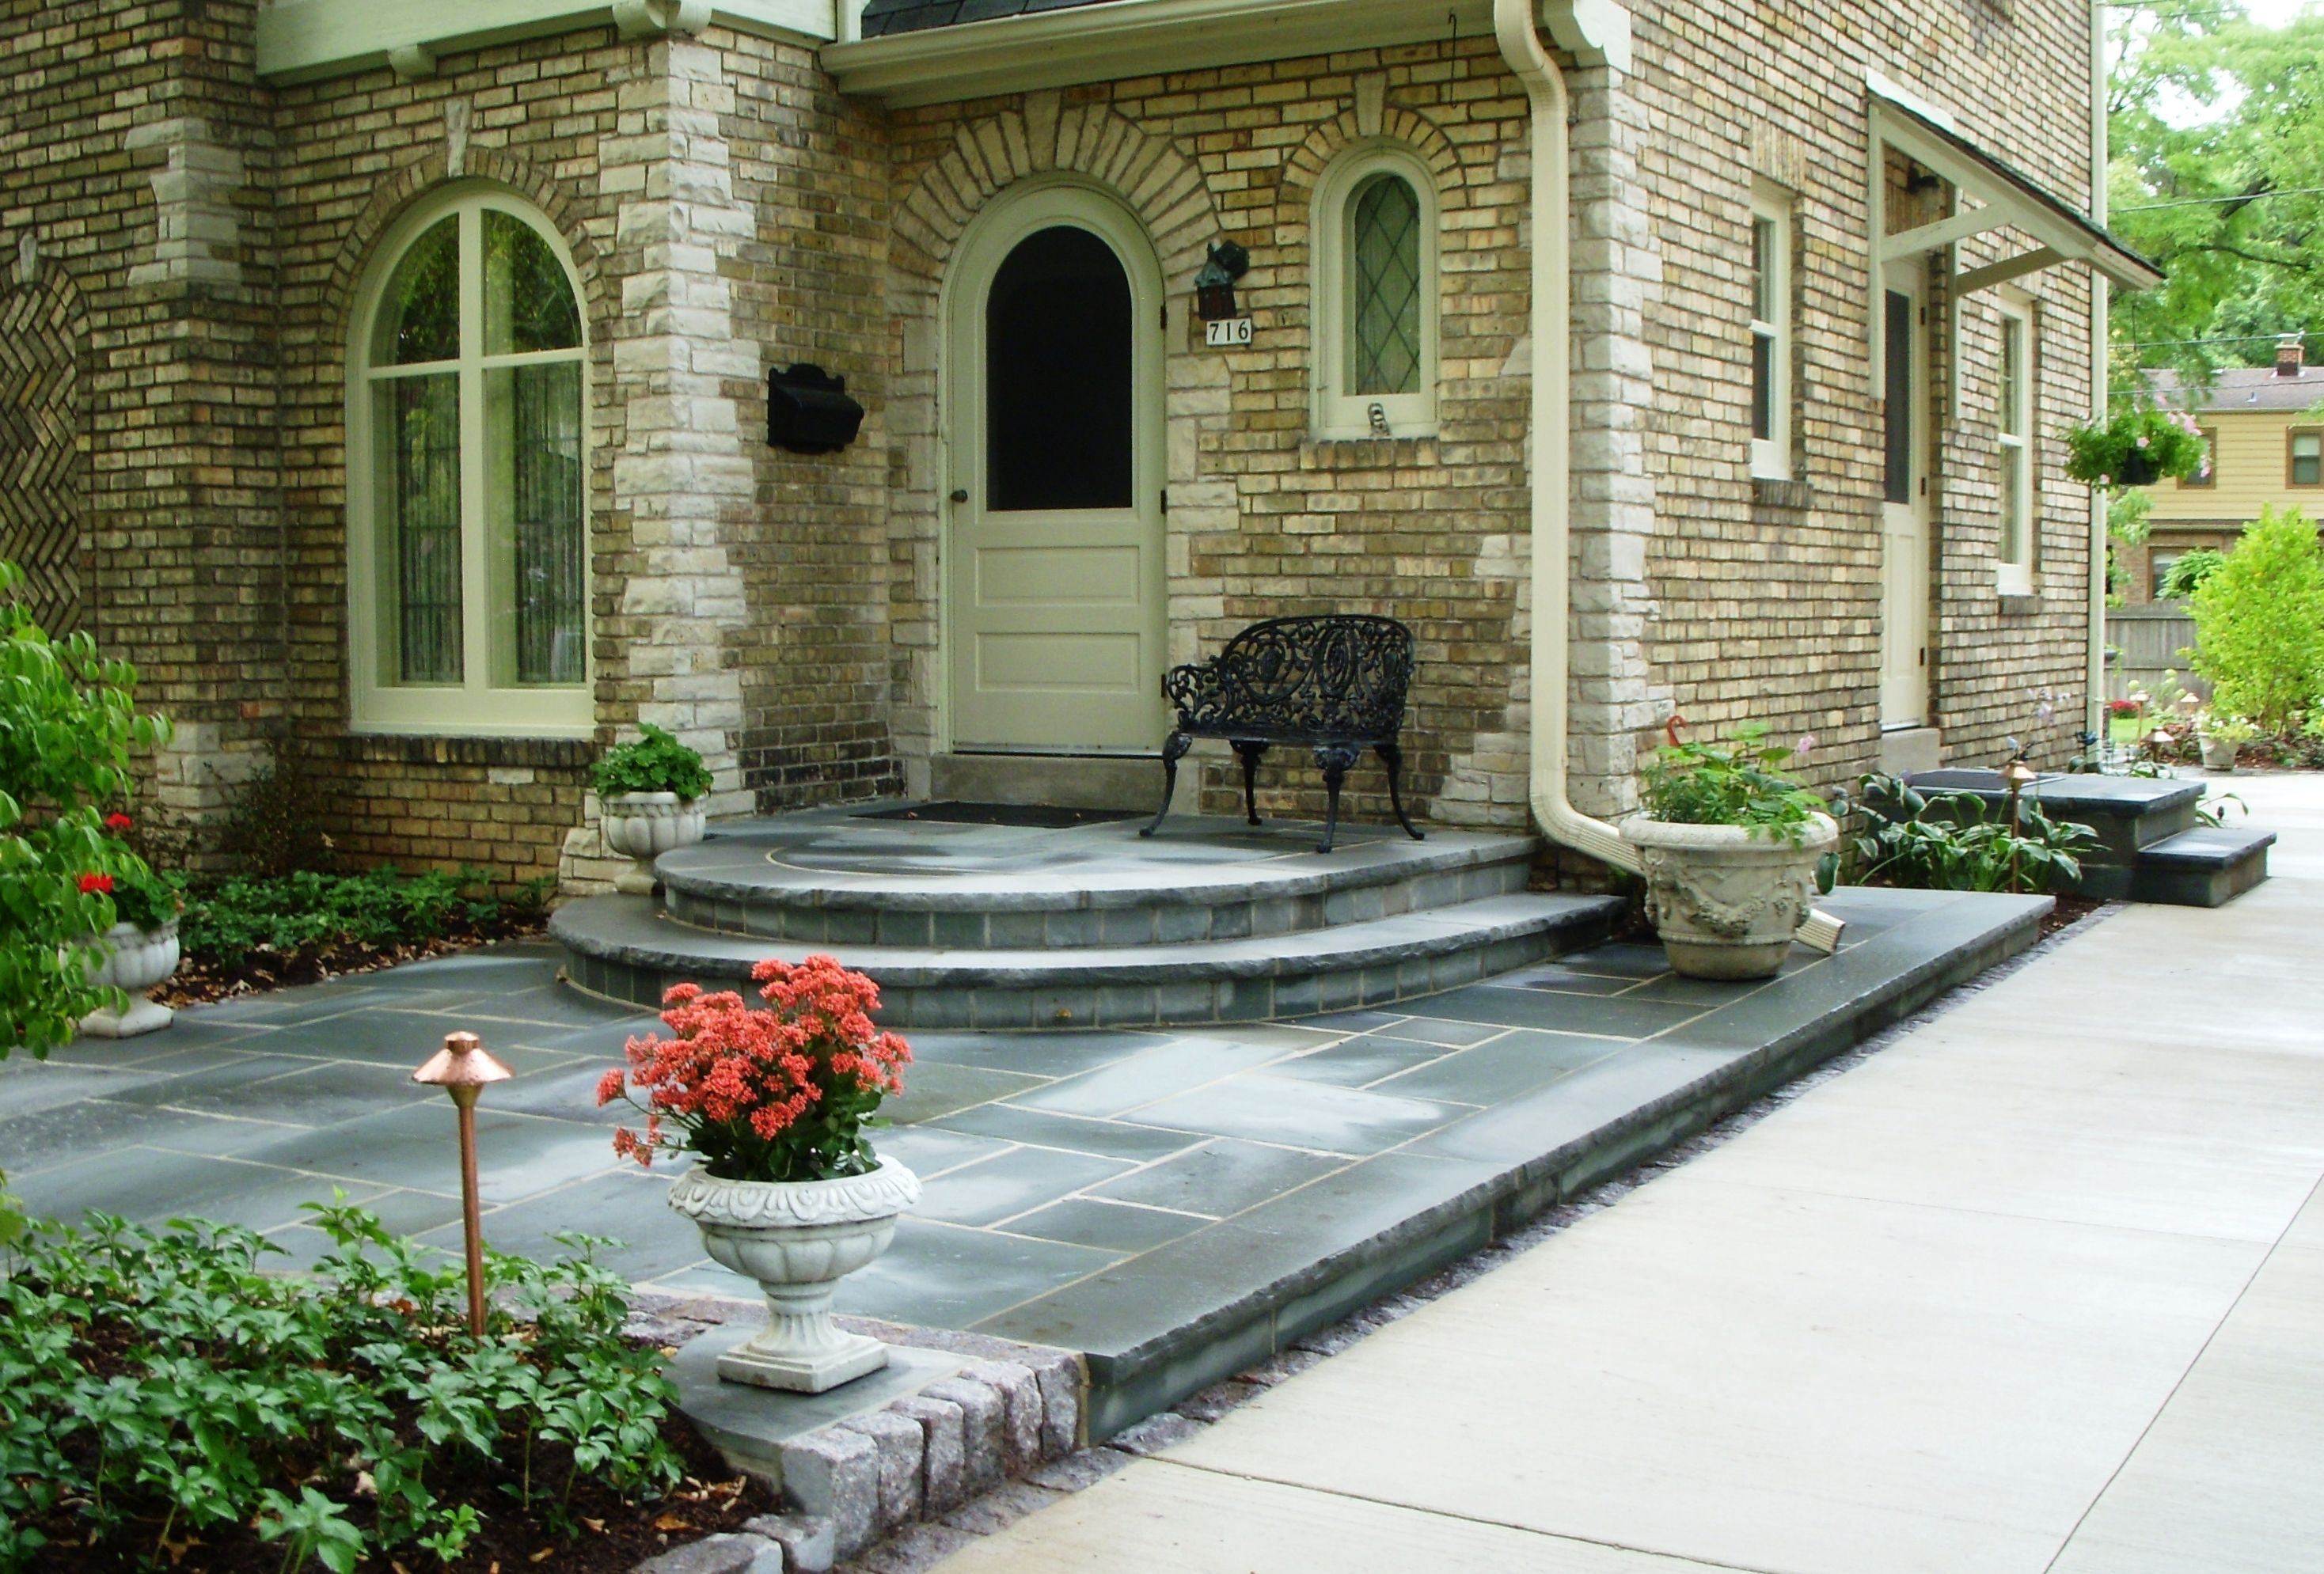 Door Stoop | curved stoop is reconstructed and capped with Bluestone in a shape . & Door Stoop | curved stoop is reconstructed and capped with Bluestone ...